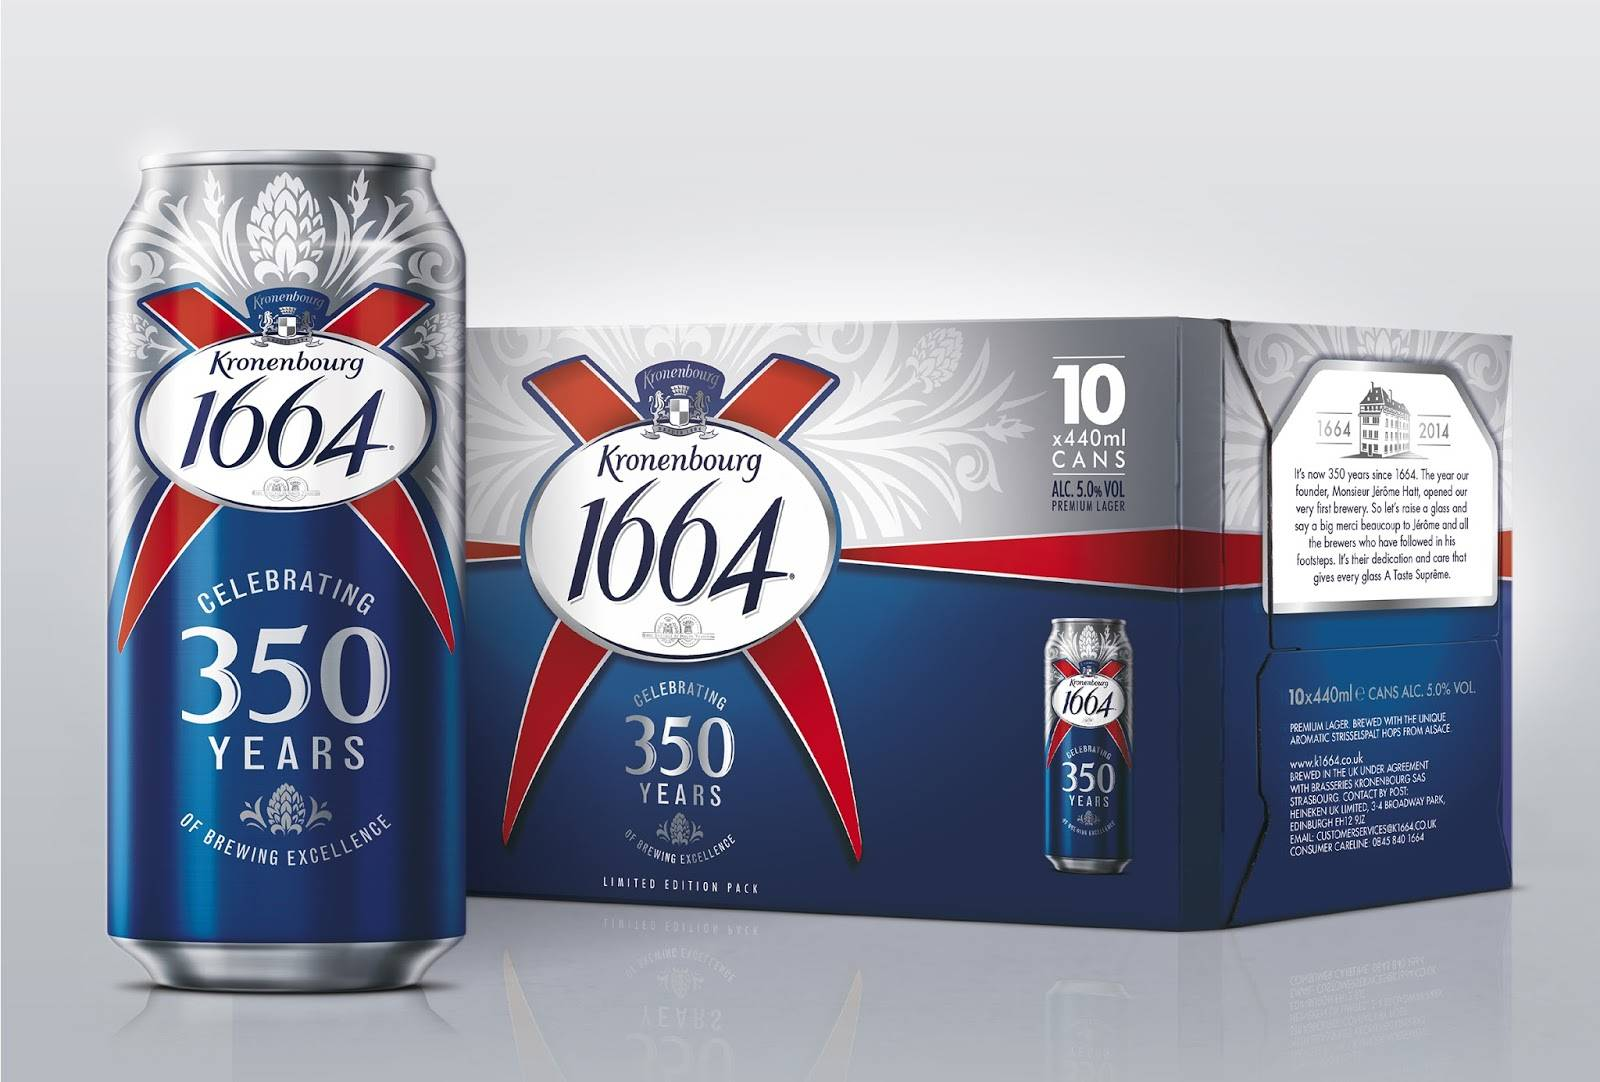 KRONENBOURG BLANC 1664 BEER BOTTLE AND CANS